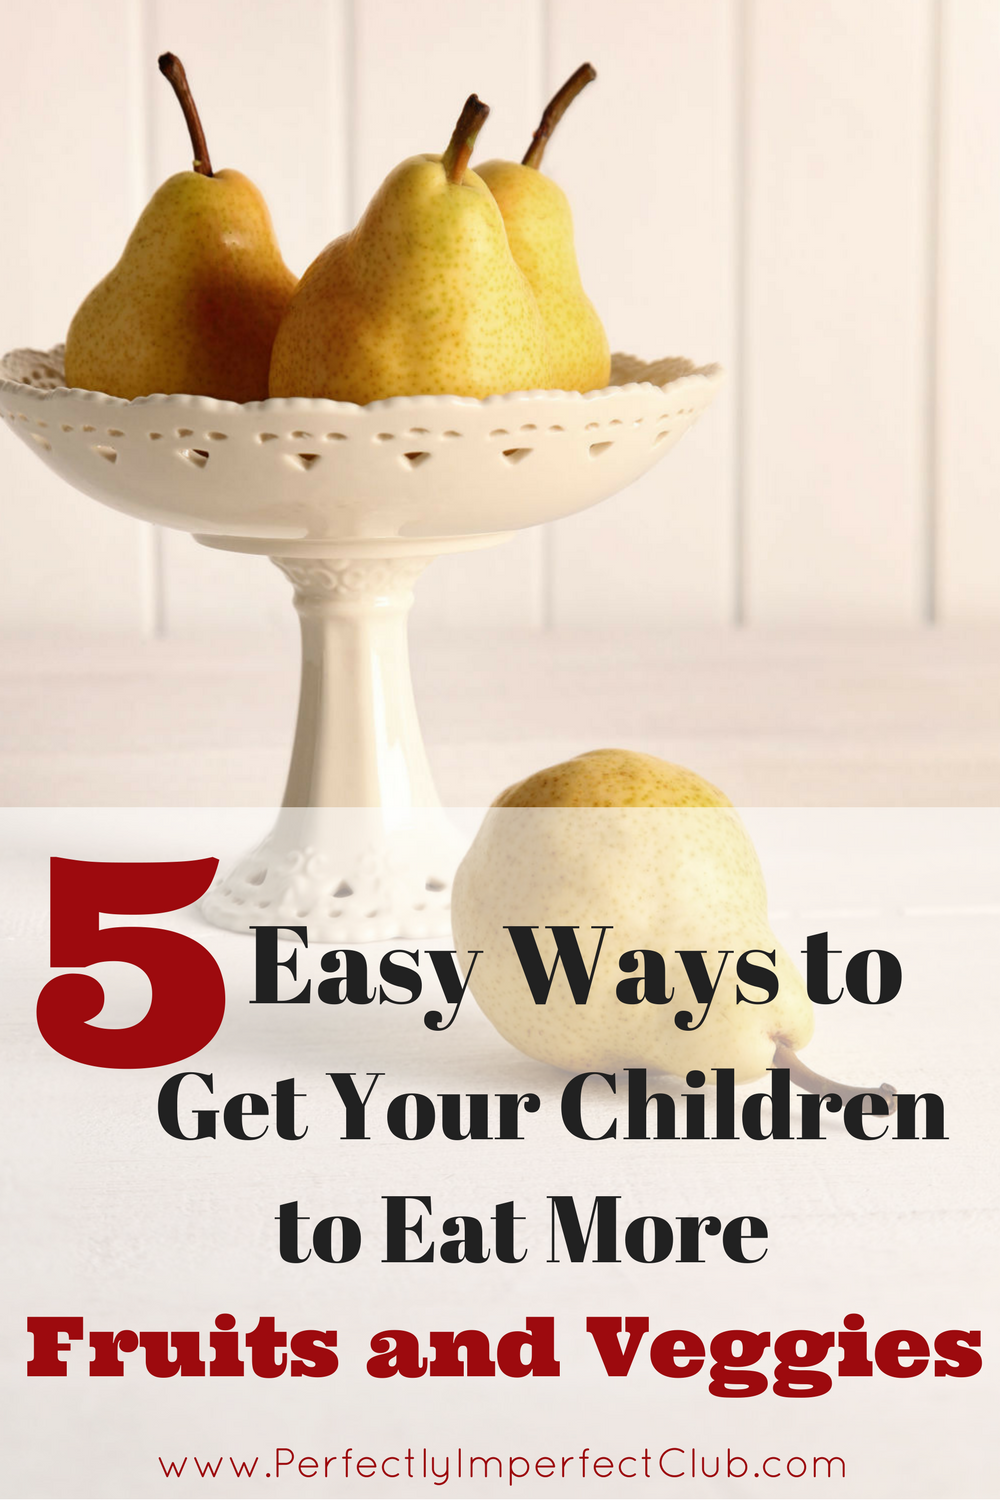 My children barely ate any fruits and veggies until this changed. Now, they eat more than the recommended amount every single day!